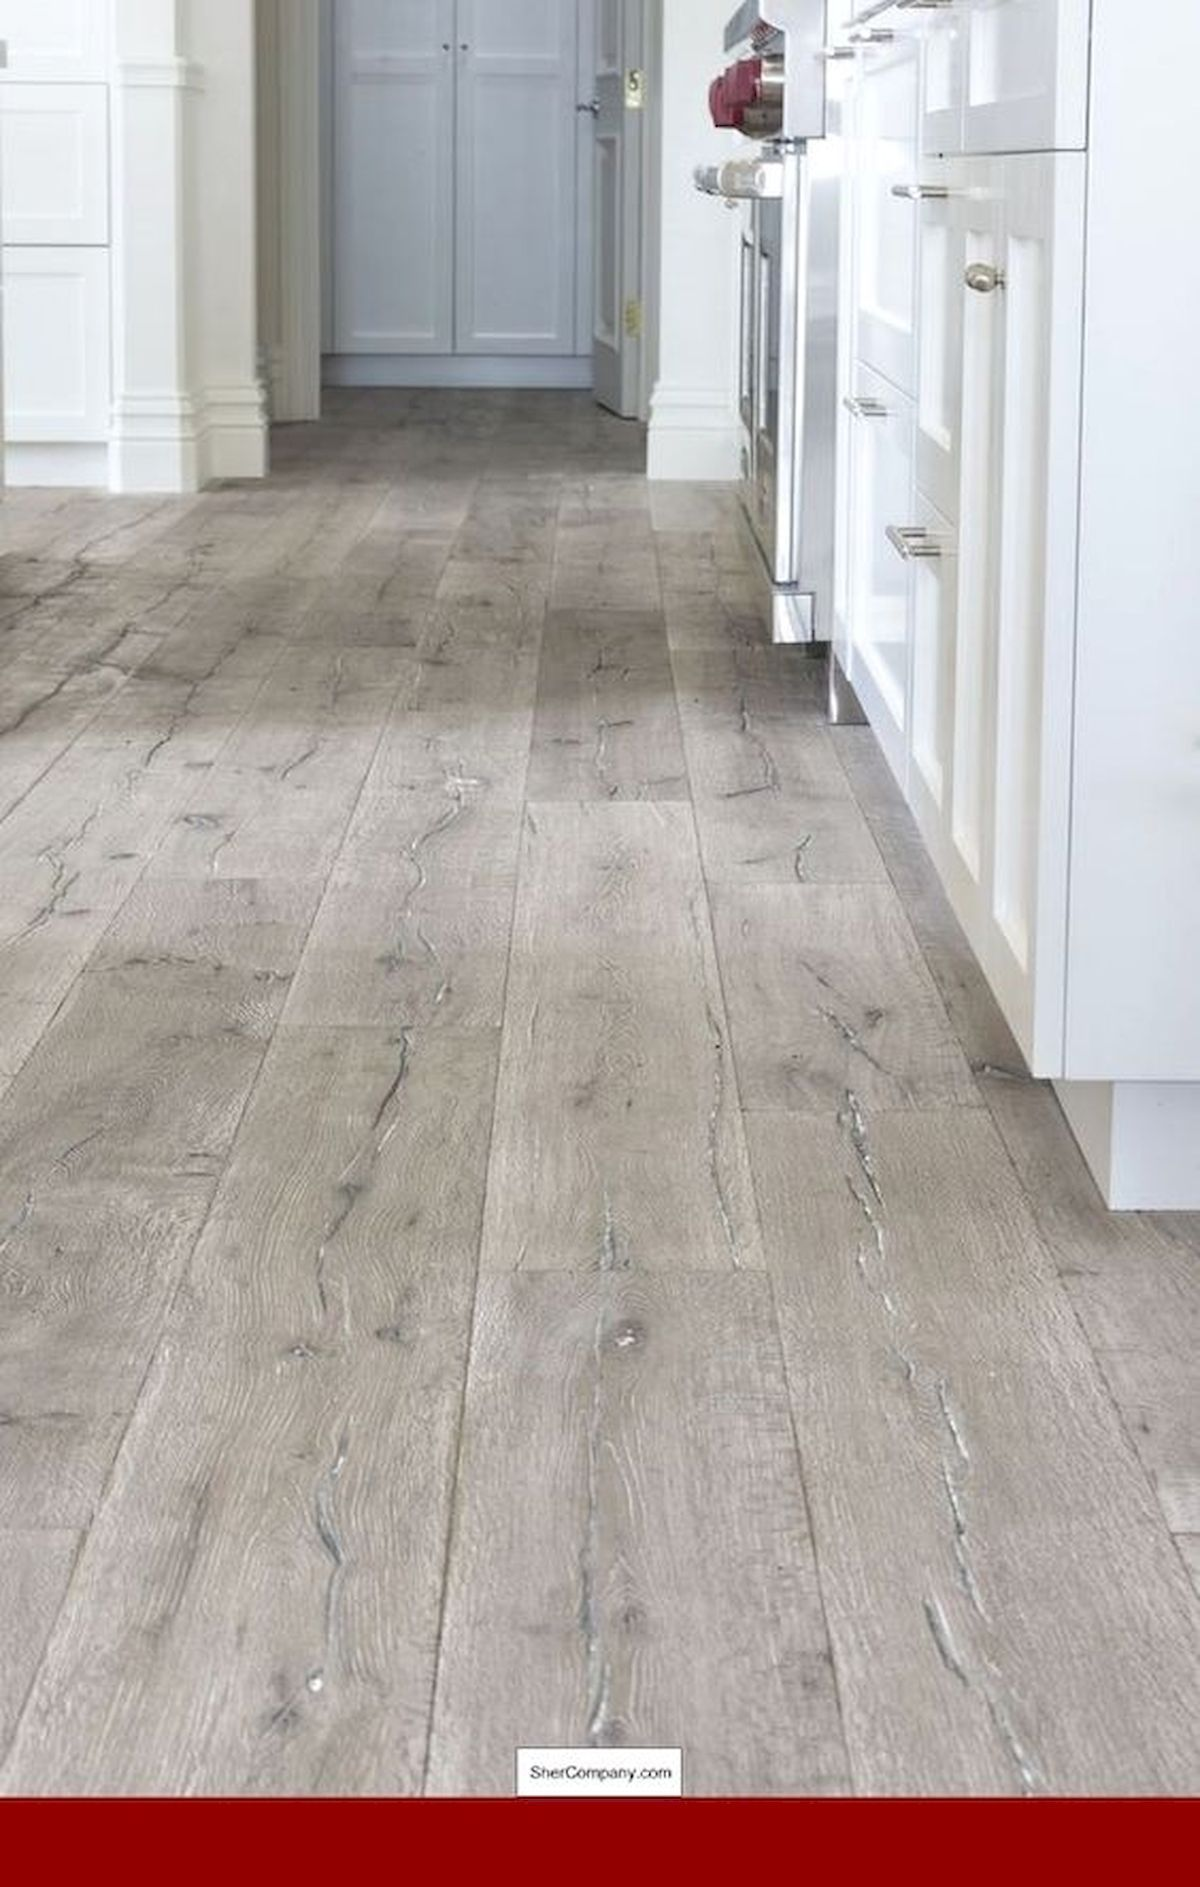 40 Best Farmhouse Floors Farmhouse Flooring Light Wood Floors Wood Floors Wide Plank